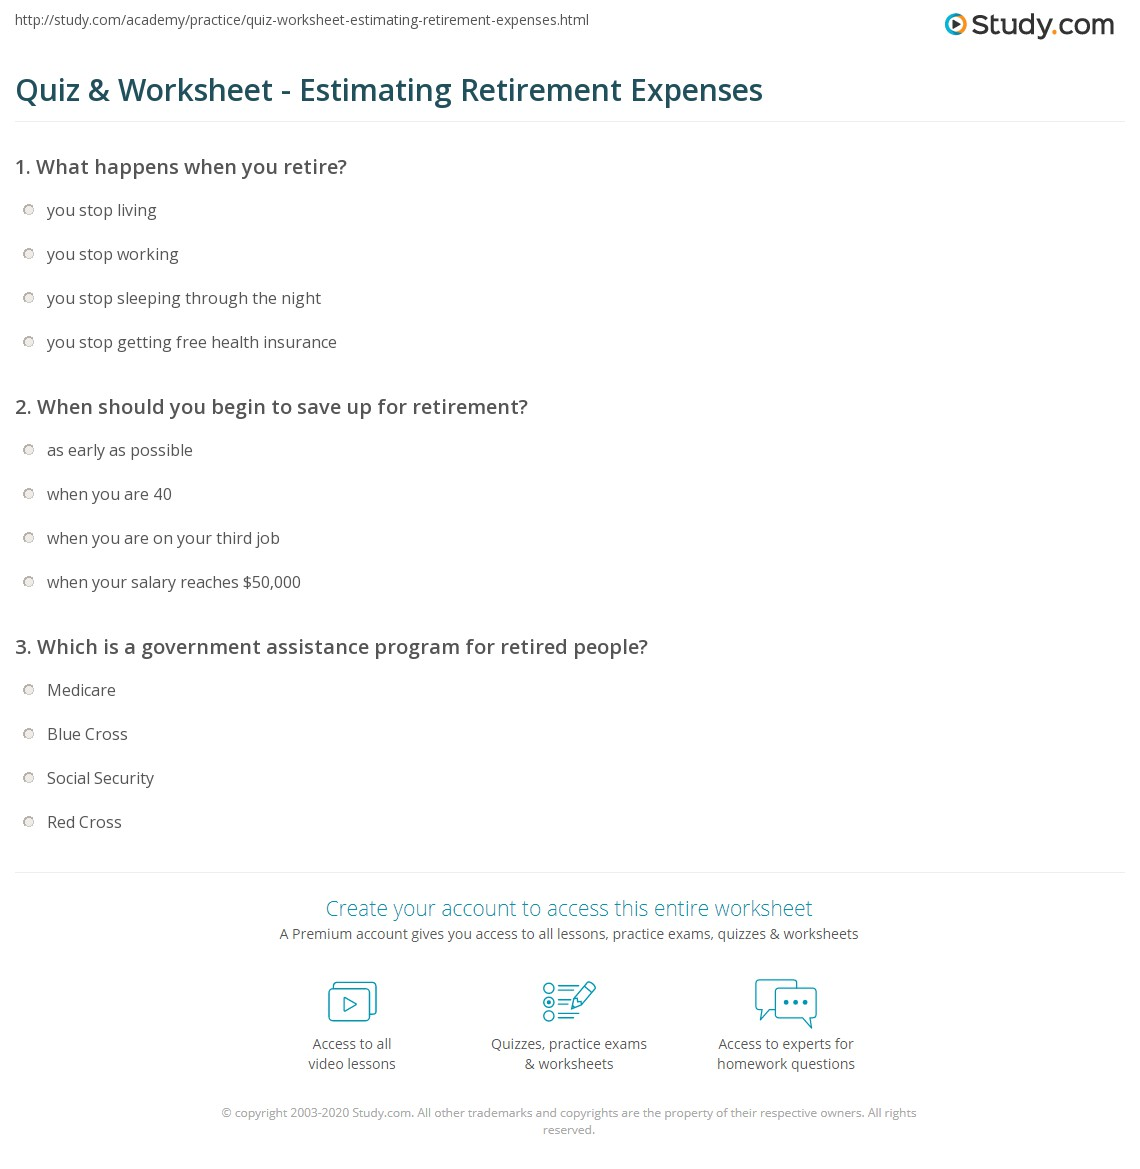 Printables Retirement Expenses Worksheet retirement expenses worksheet pichaglobal quiz amp estimating study com